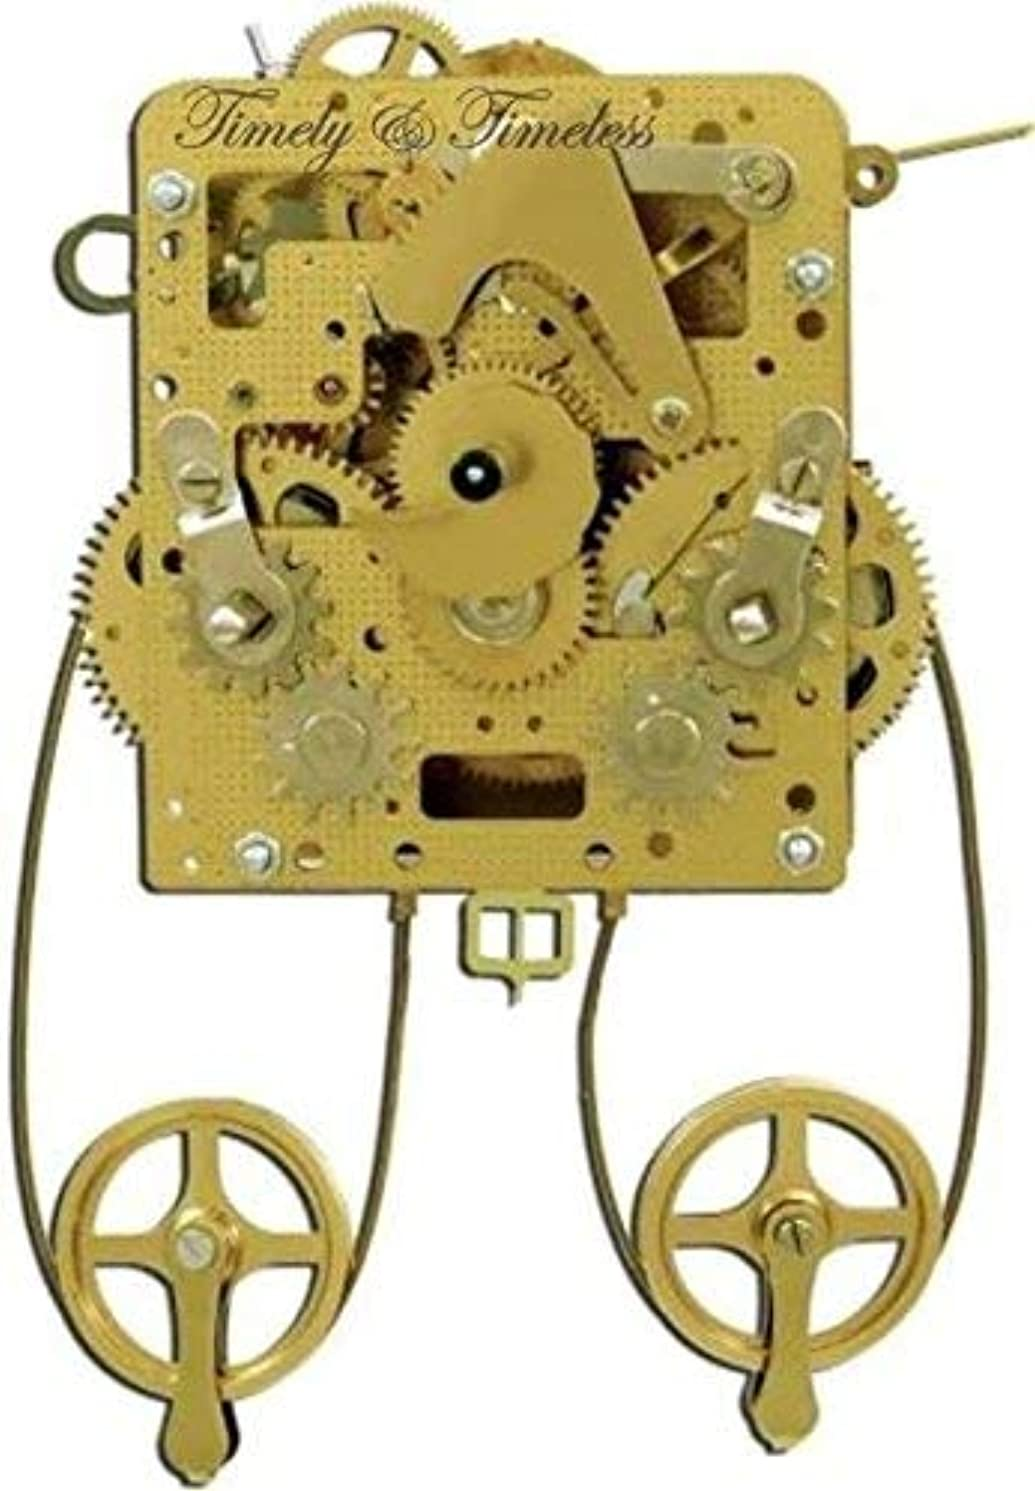 Qwirly Store: Hermle Clock Movement 241-840 Gearing 75, 85 or 94 cm (94cm)